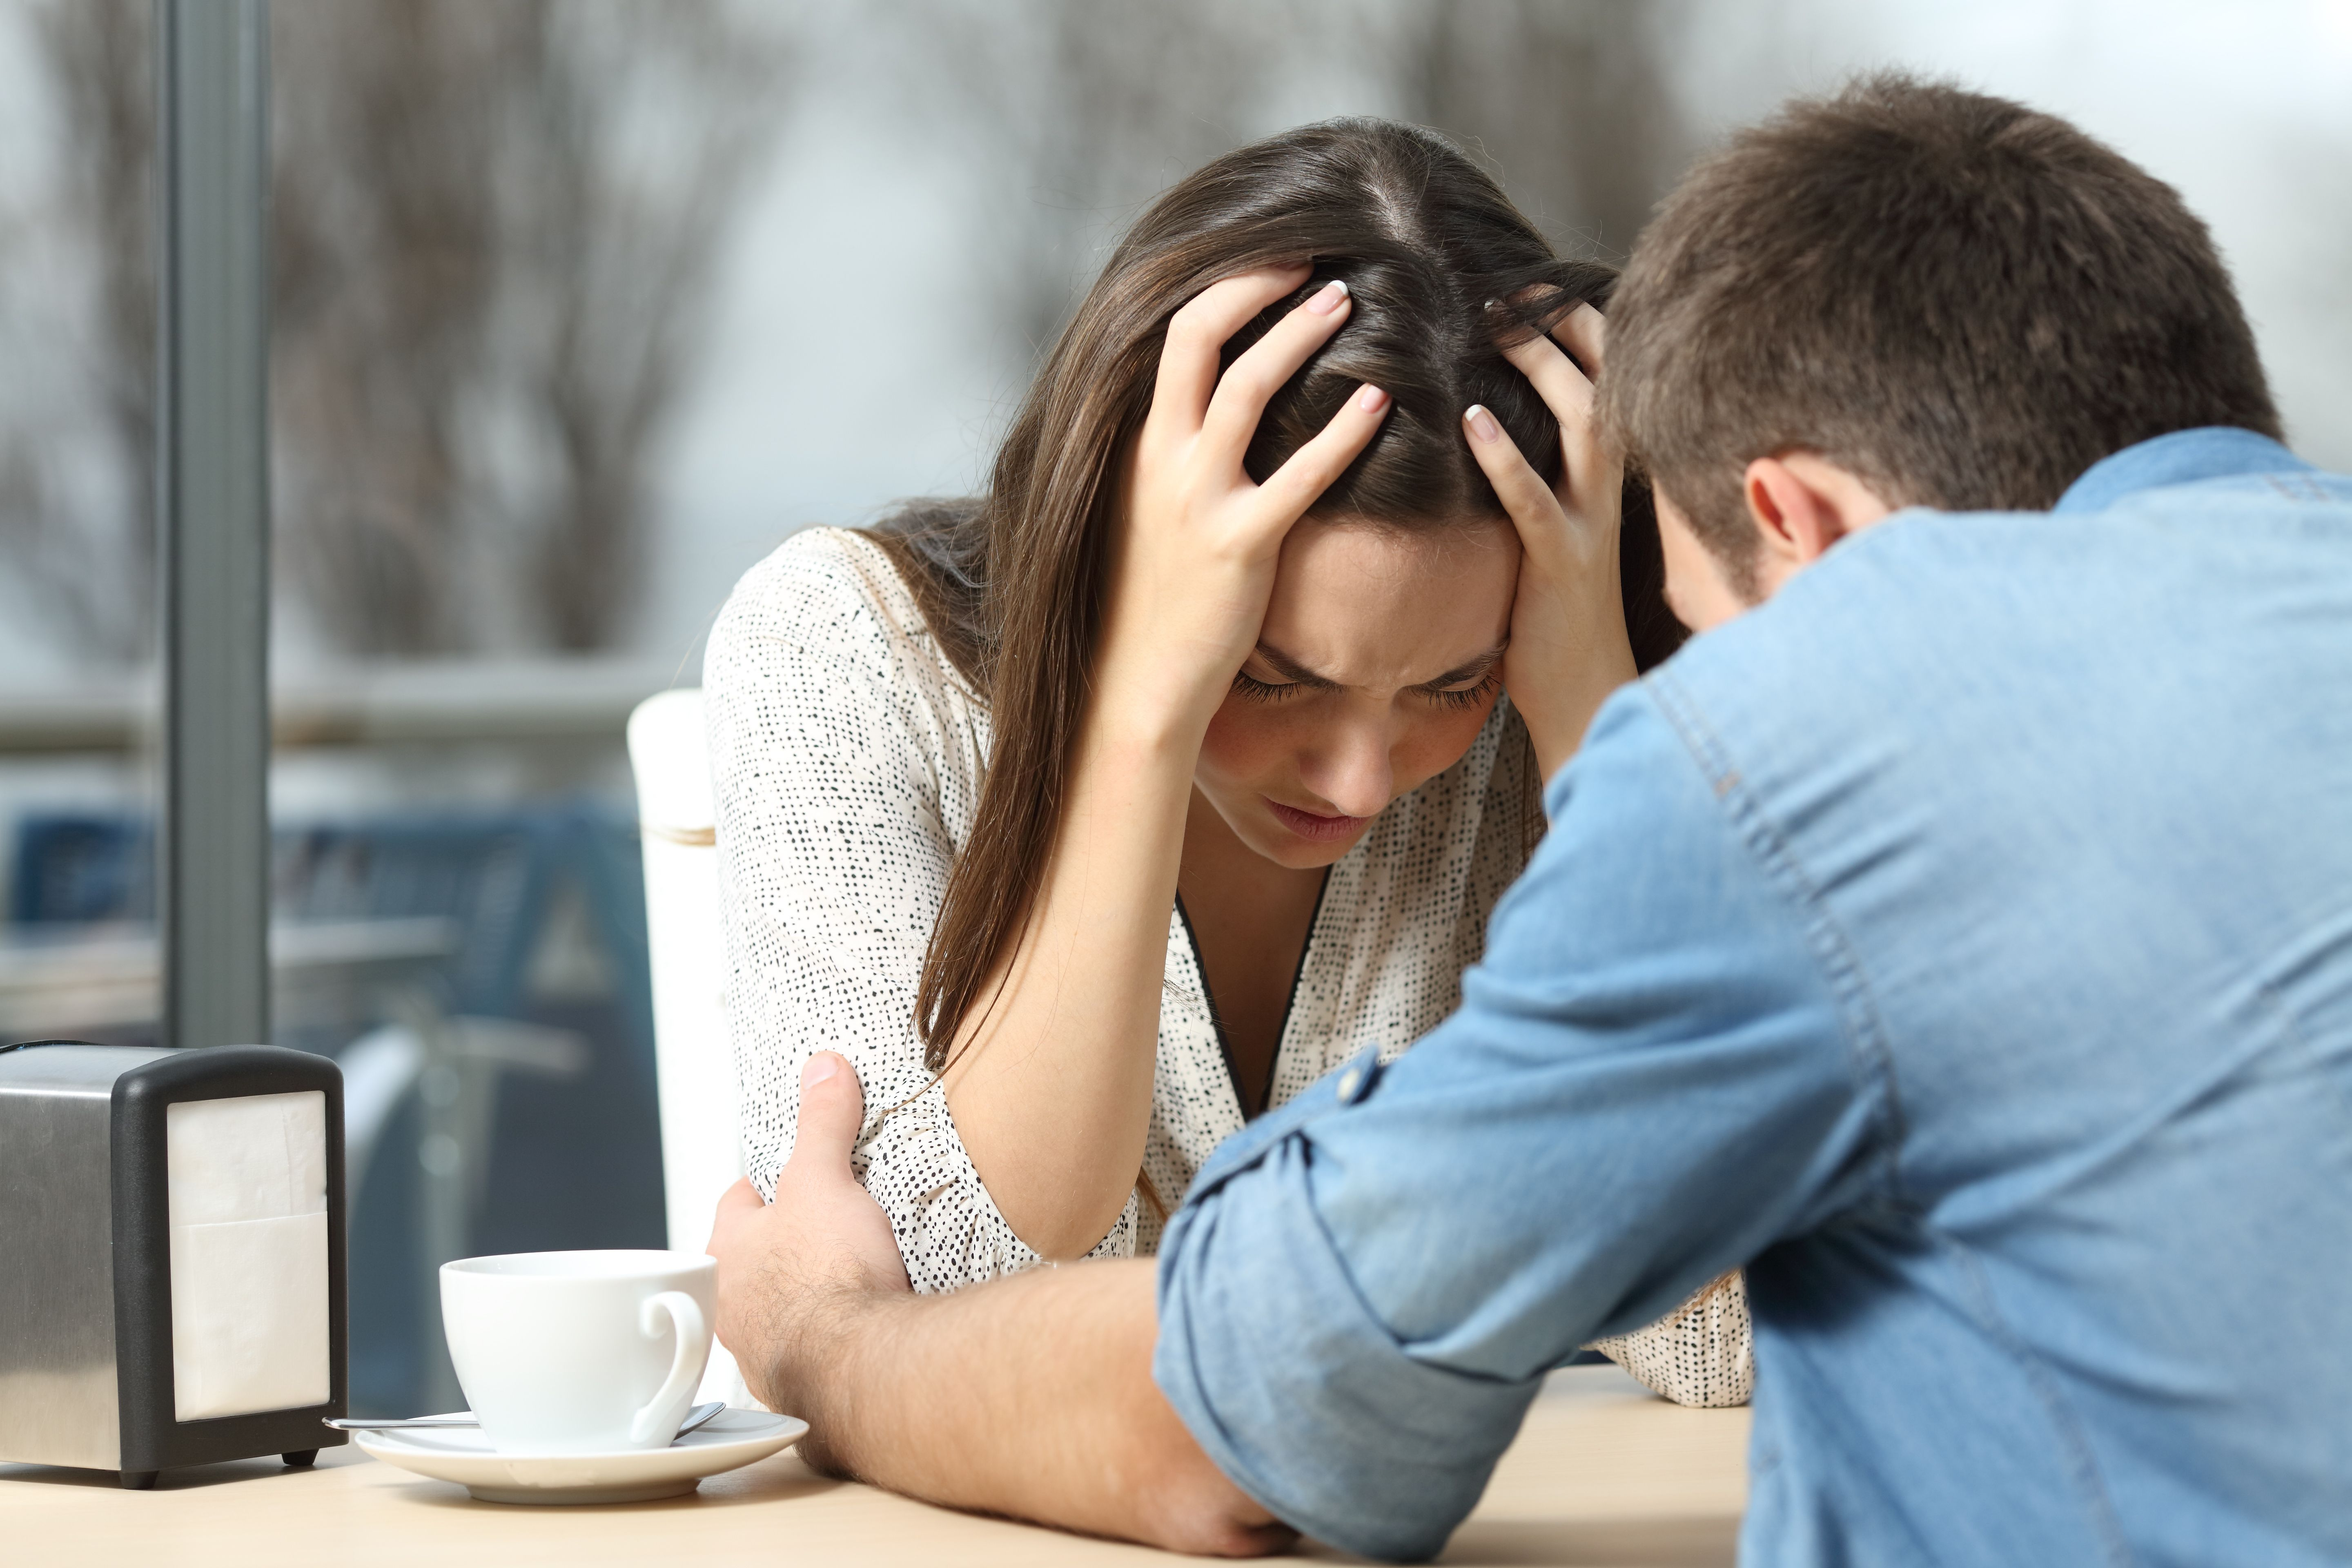 A couple talks about a problem they have together. | Source: Shutterstock